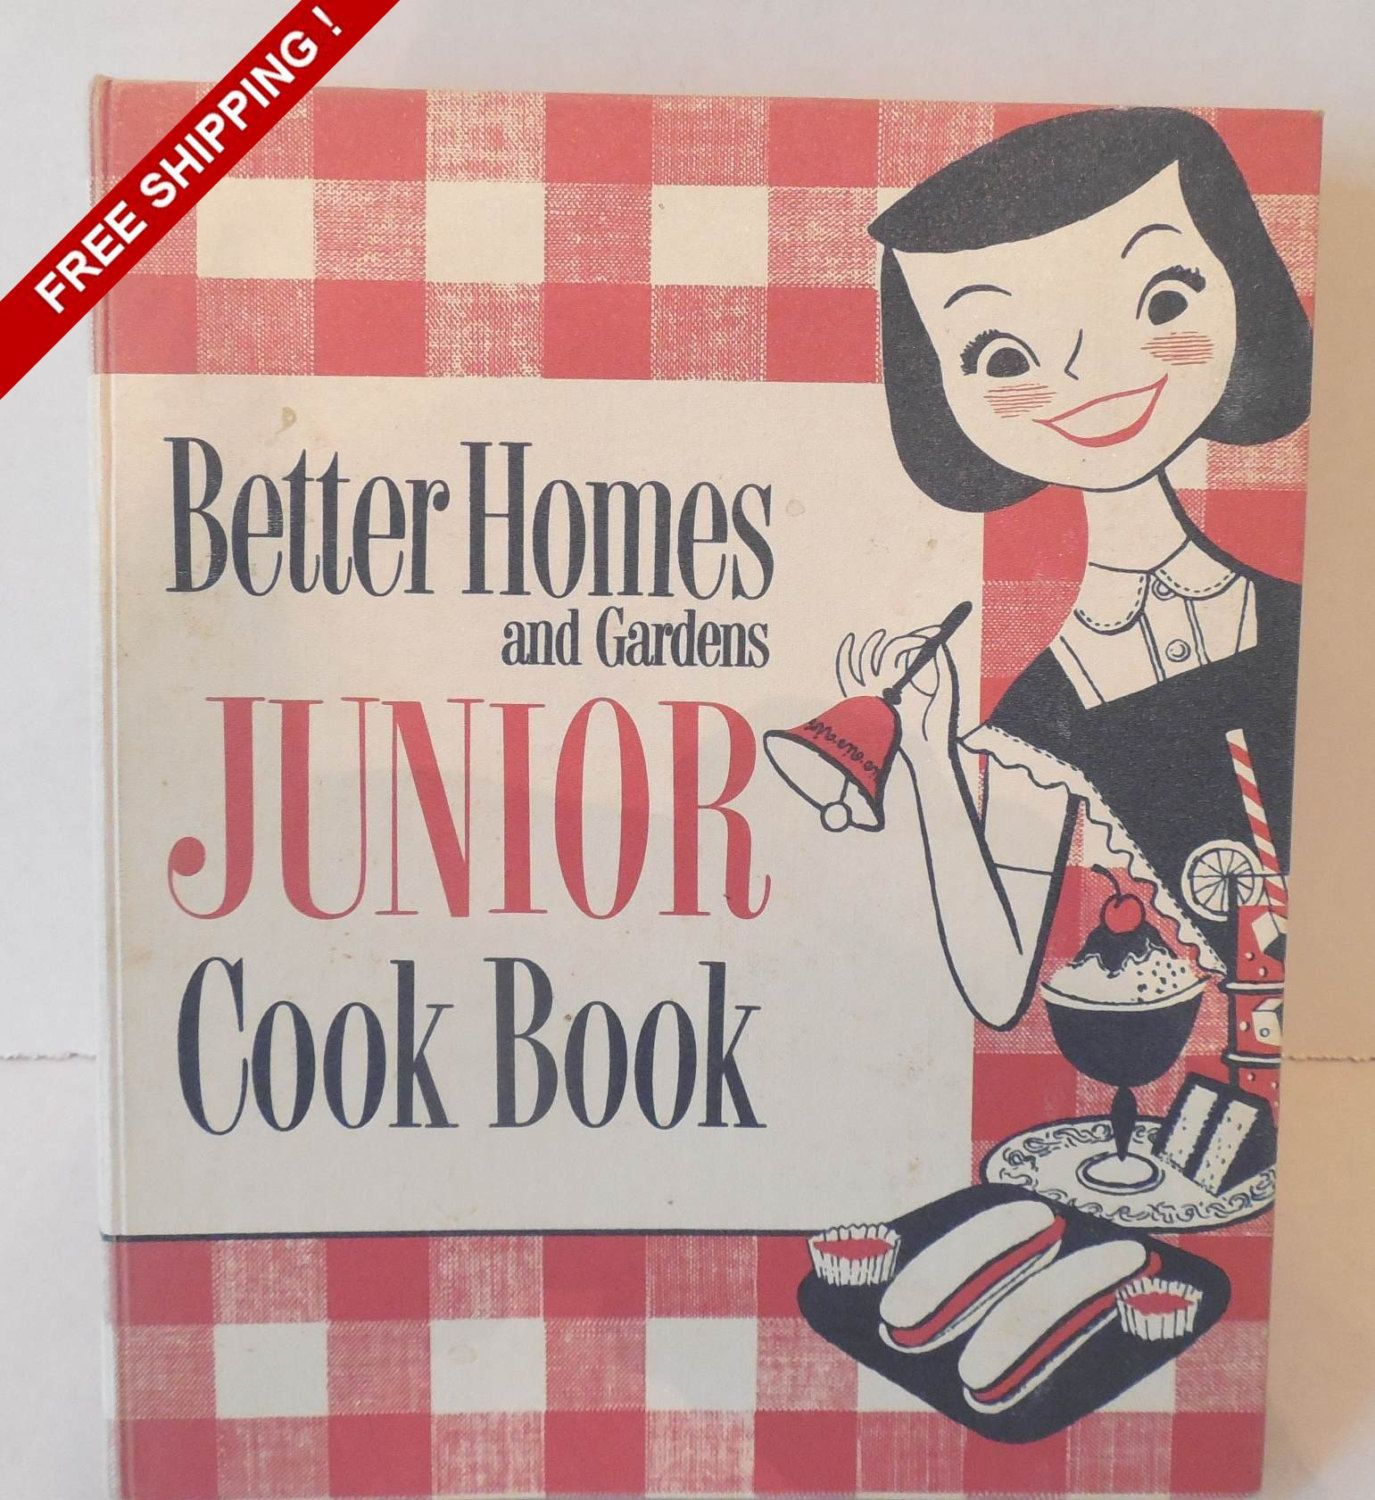 b07250581b50fd64553cf2560dd9c335 - Better Homes And Gardens First Edition Cookbook